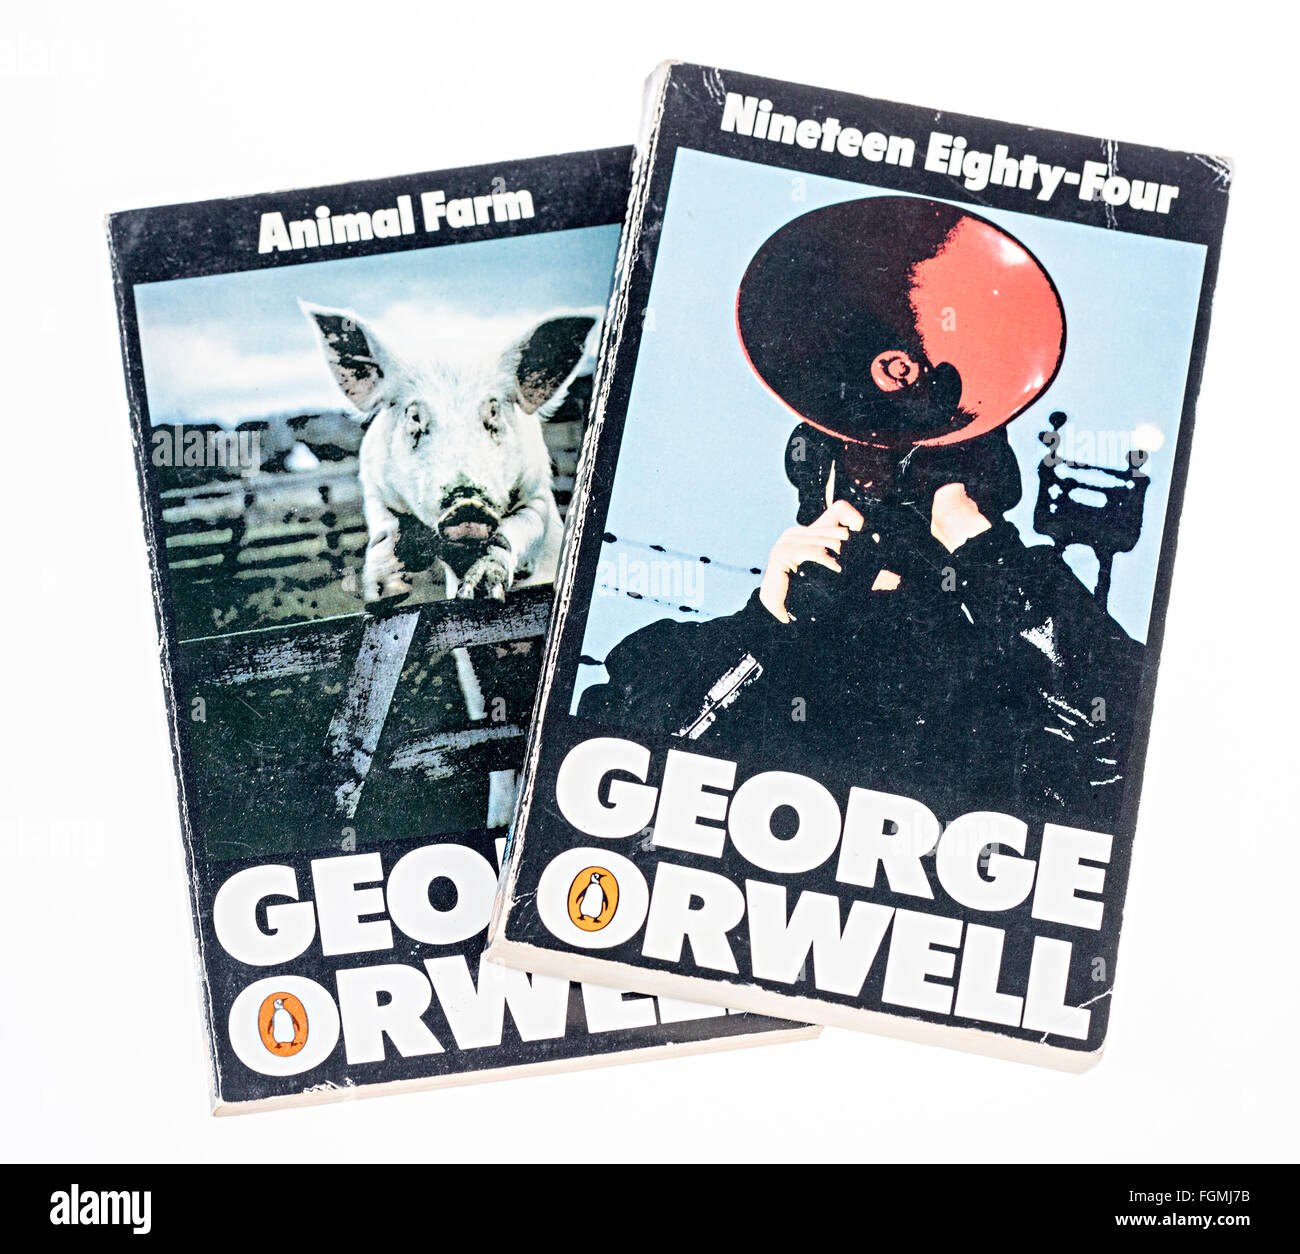 Paperback books Animal Farm and Nineteen Eighty Four by George Orwell - Stock Image